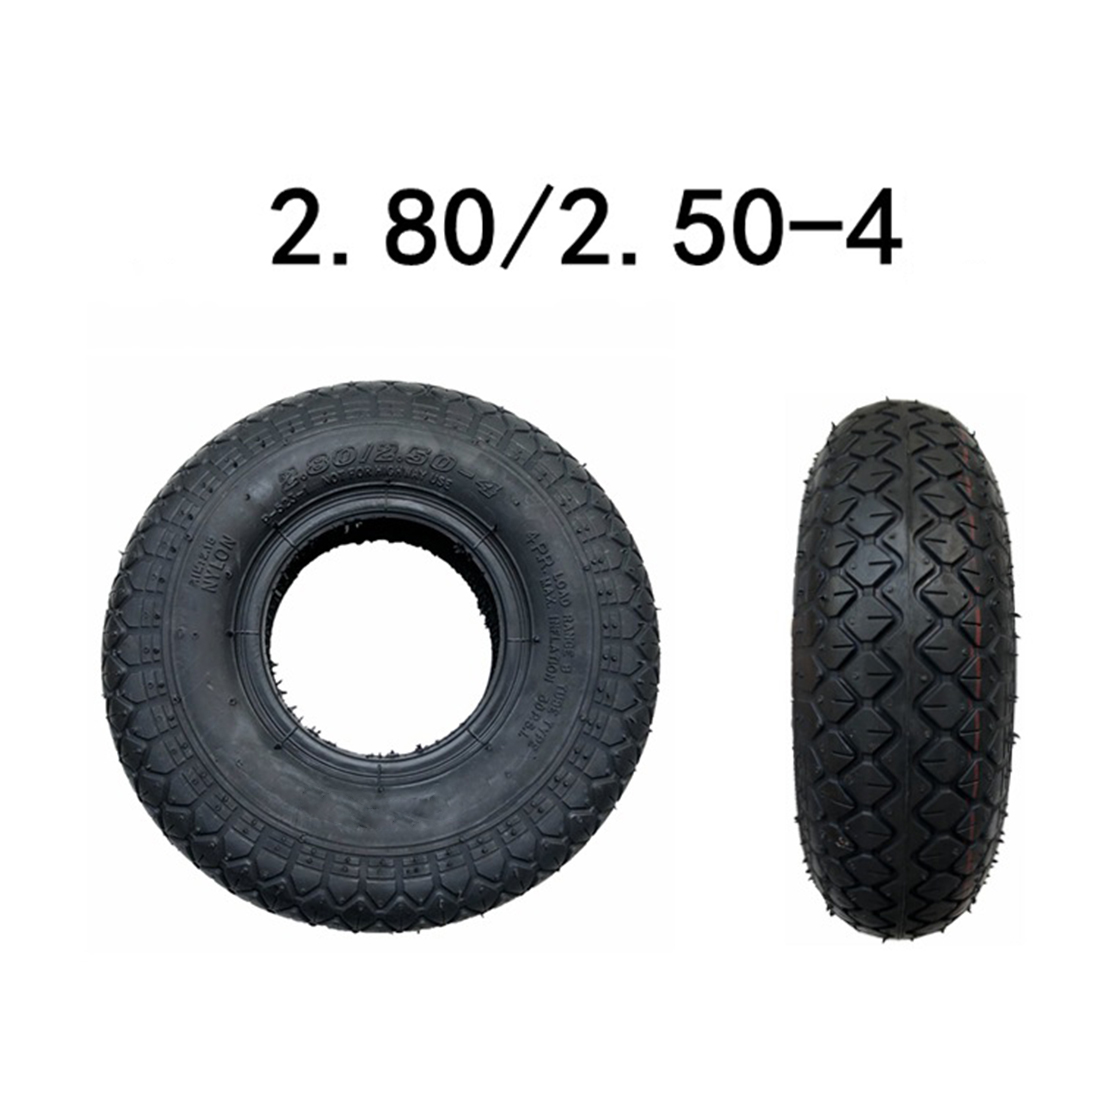 9 Inch <font><b>2.80/2.50</b></font>-<font><b>4</b></font> Thick Tire / Inner Tube For Elderly Electric Scooter Anti-explosion No Need To Fill Air image